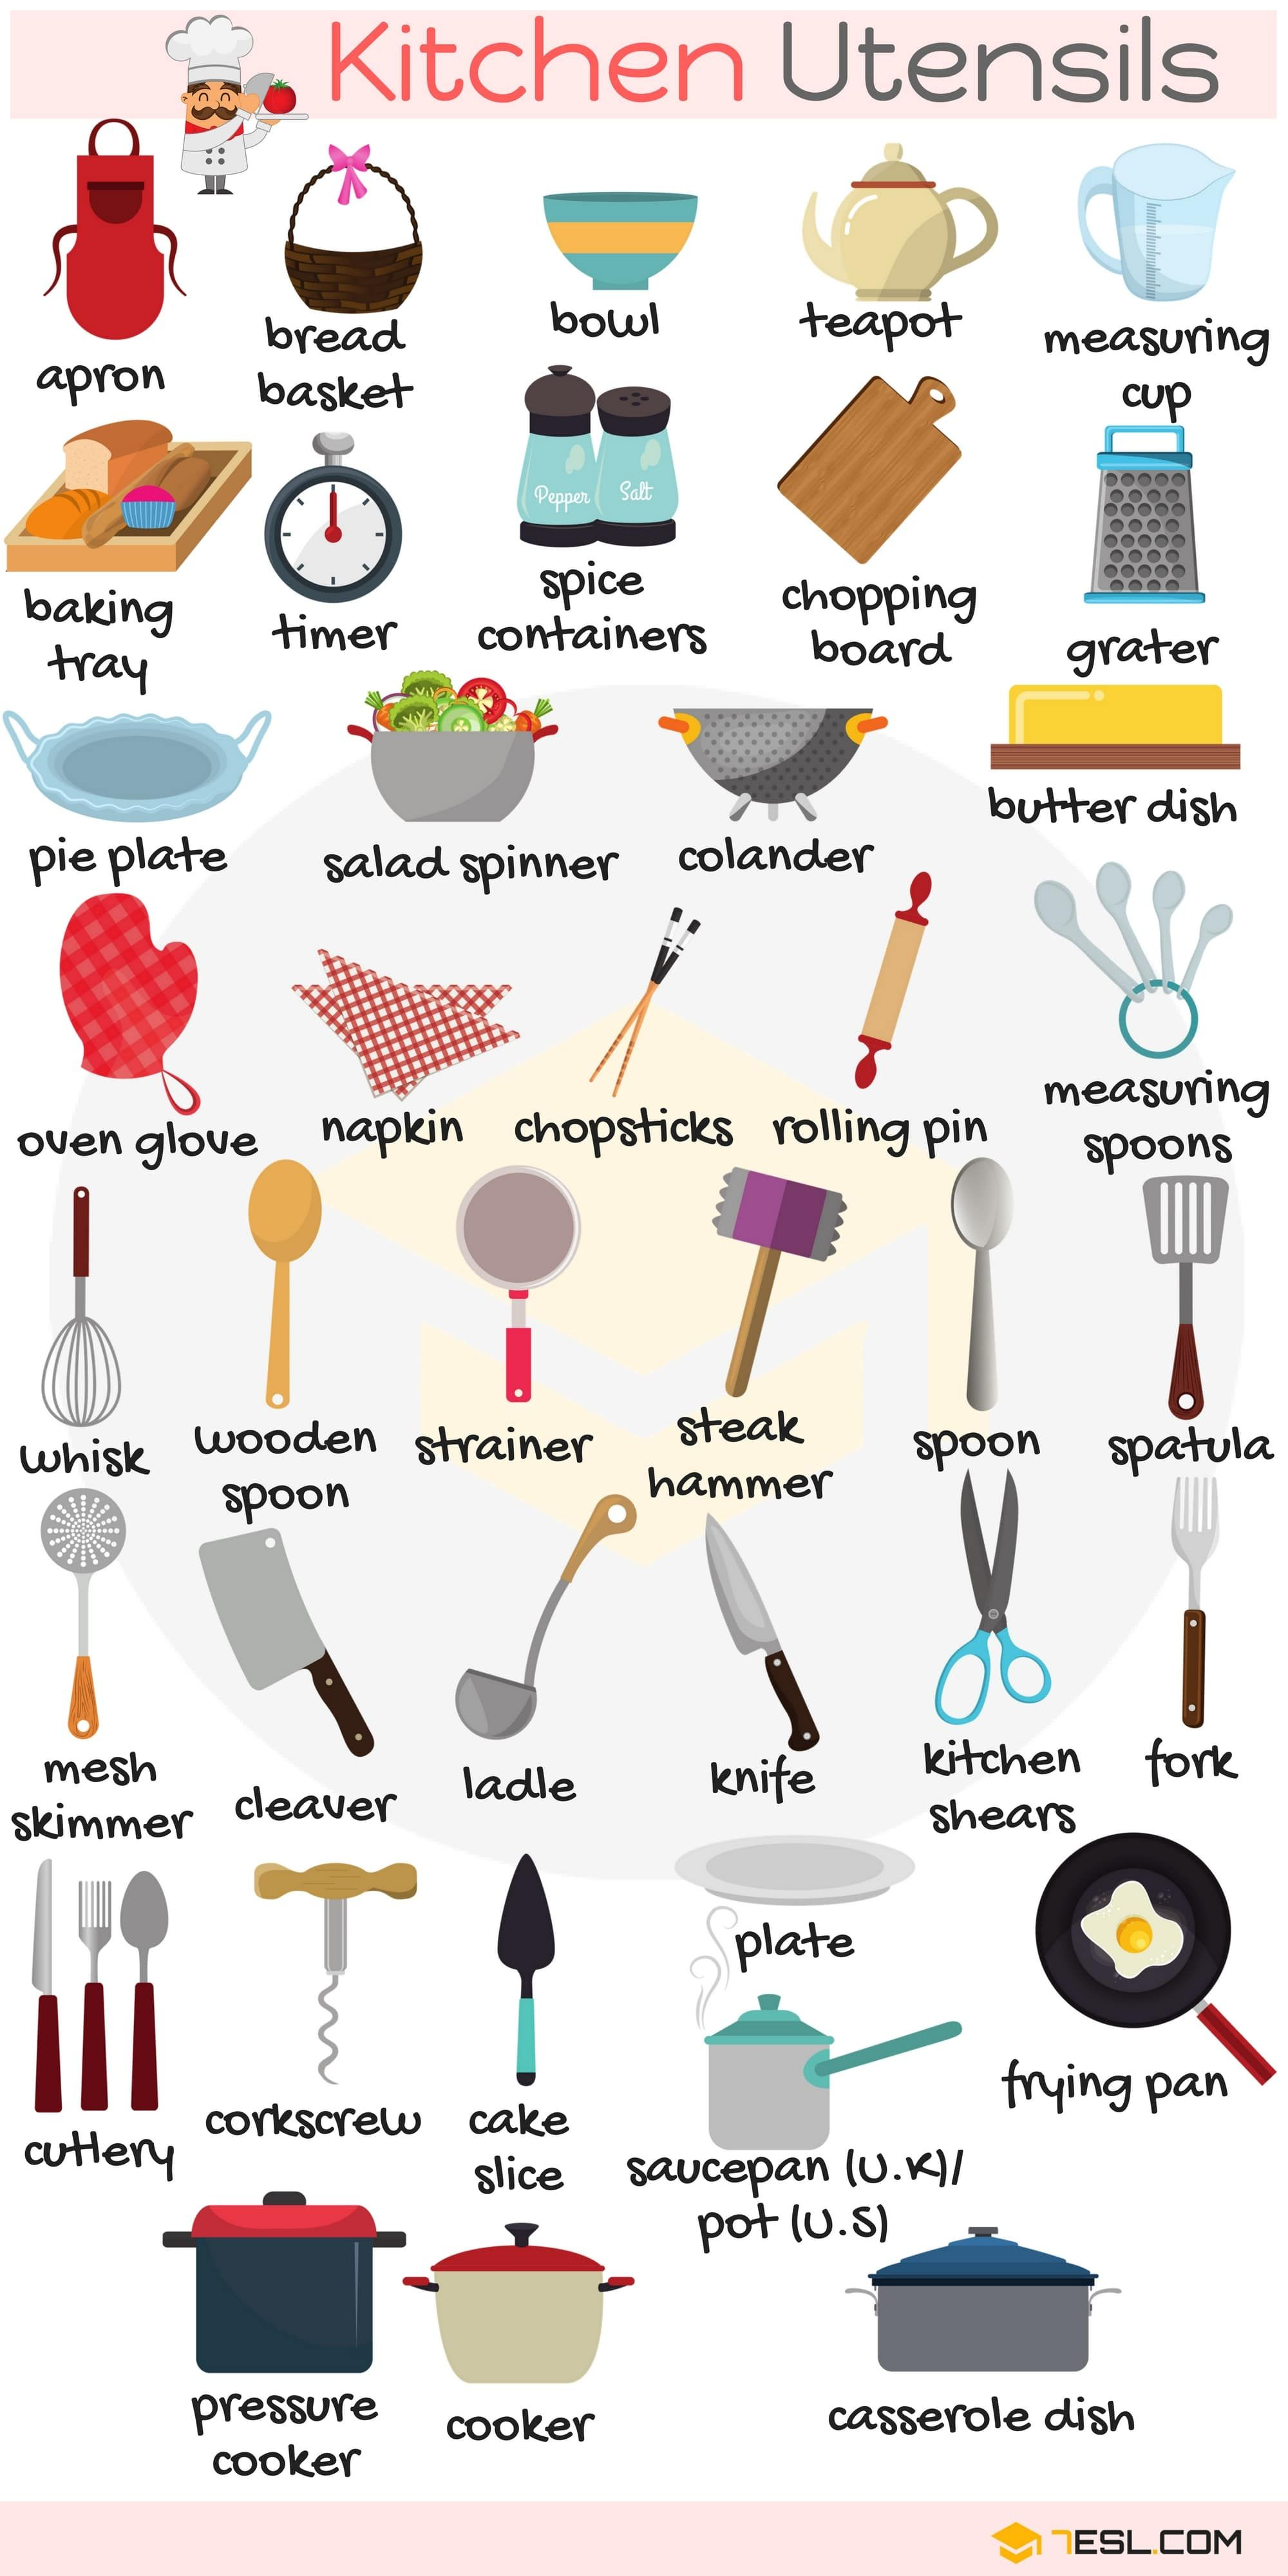 Kitchen Utensils Countertop Ideas Cheap Vocabulary In English Things The